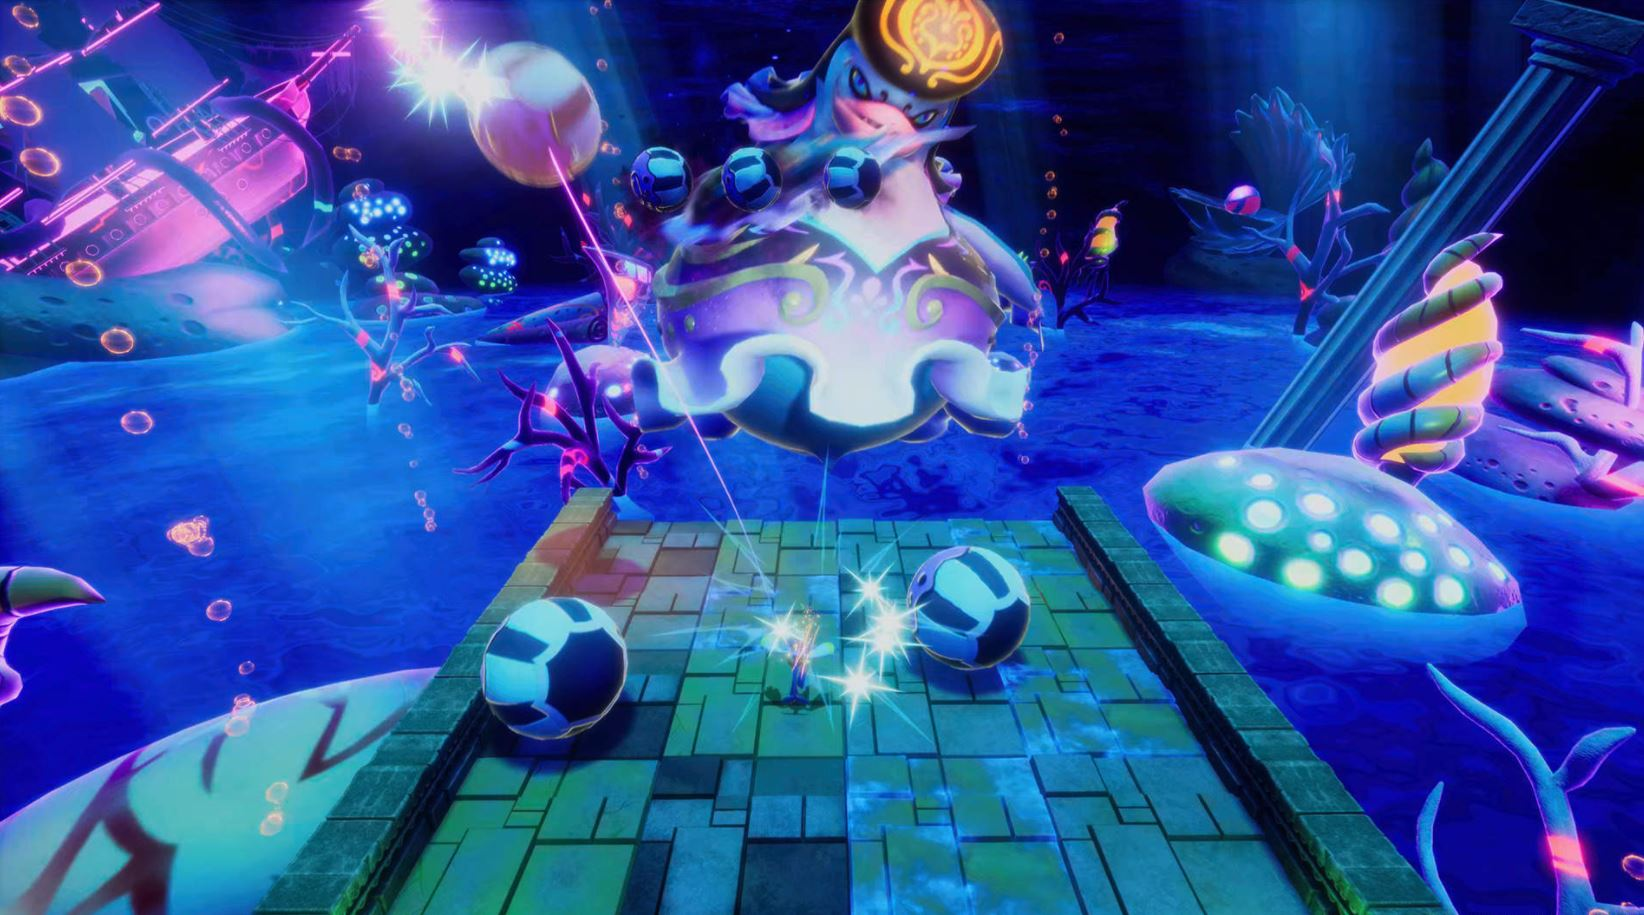 balan-wonderworld-demo-hands-on-impressions-ps5-ps4-a-muddled-and-confused-3d-platformer-out-of-time-3